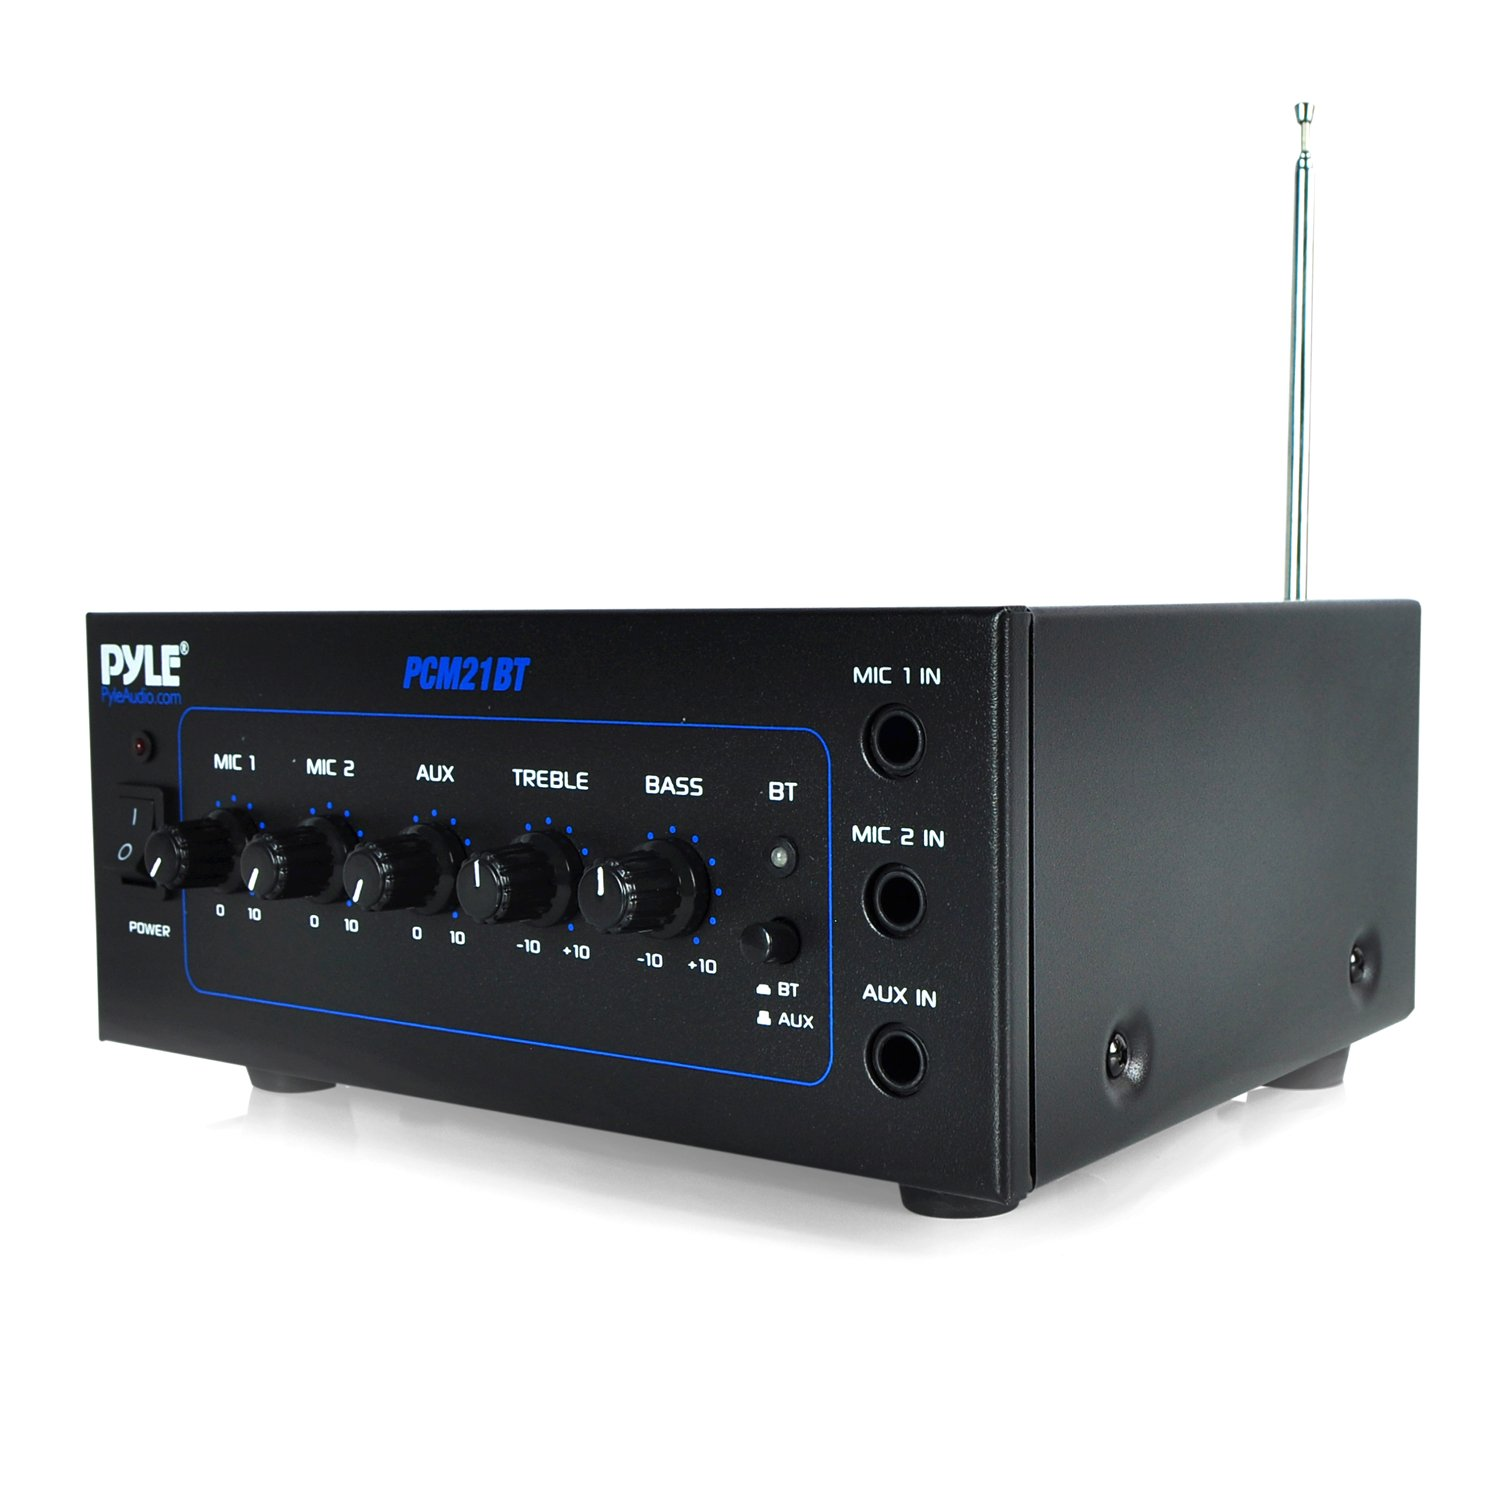 Pyle PCM21BT 70v Mini Bluetooth Power Amplifier with Two Microphone Inputs and Built in Equalizer - 40w